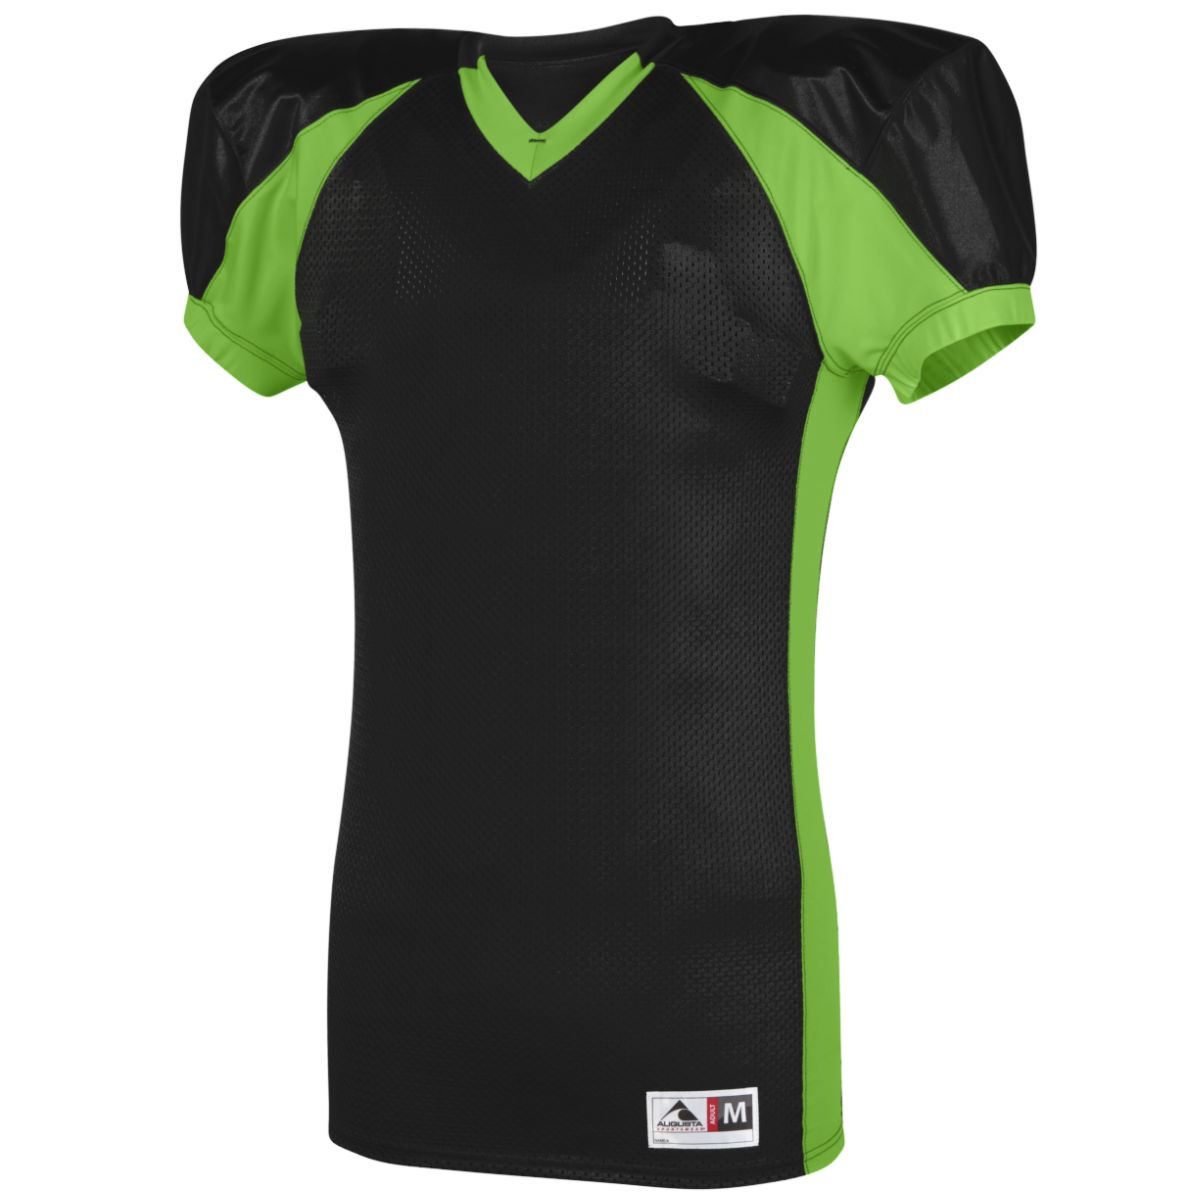 Augusta Snap Jersey Blk/Lime 3Xl - image 1 of 1